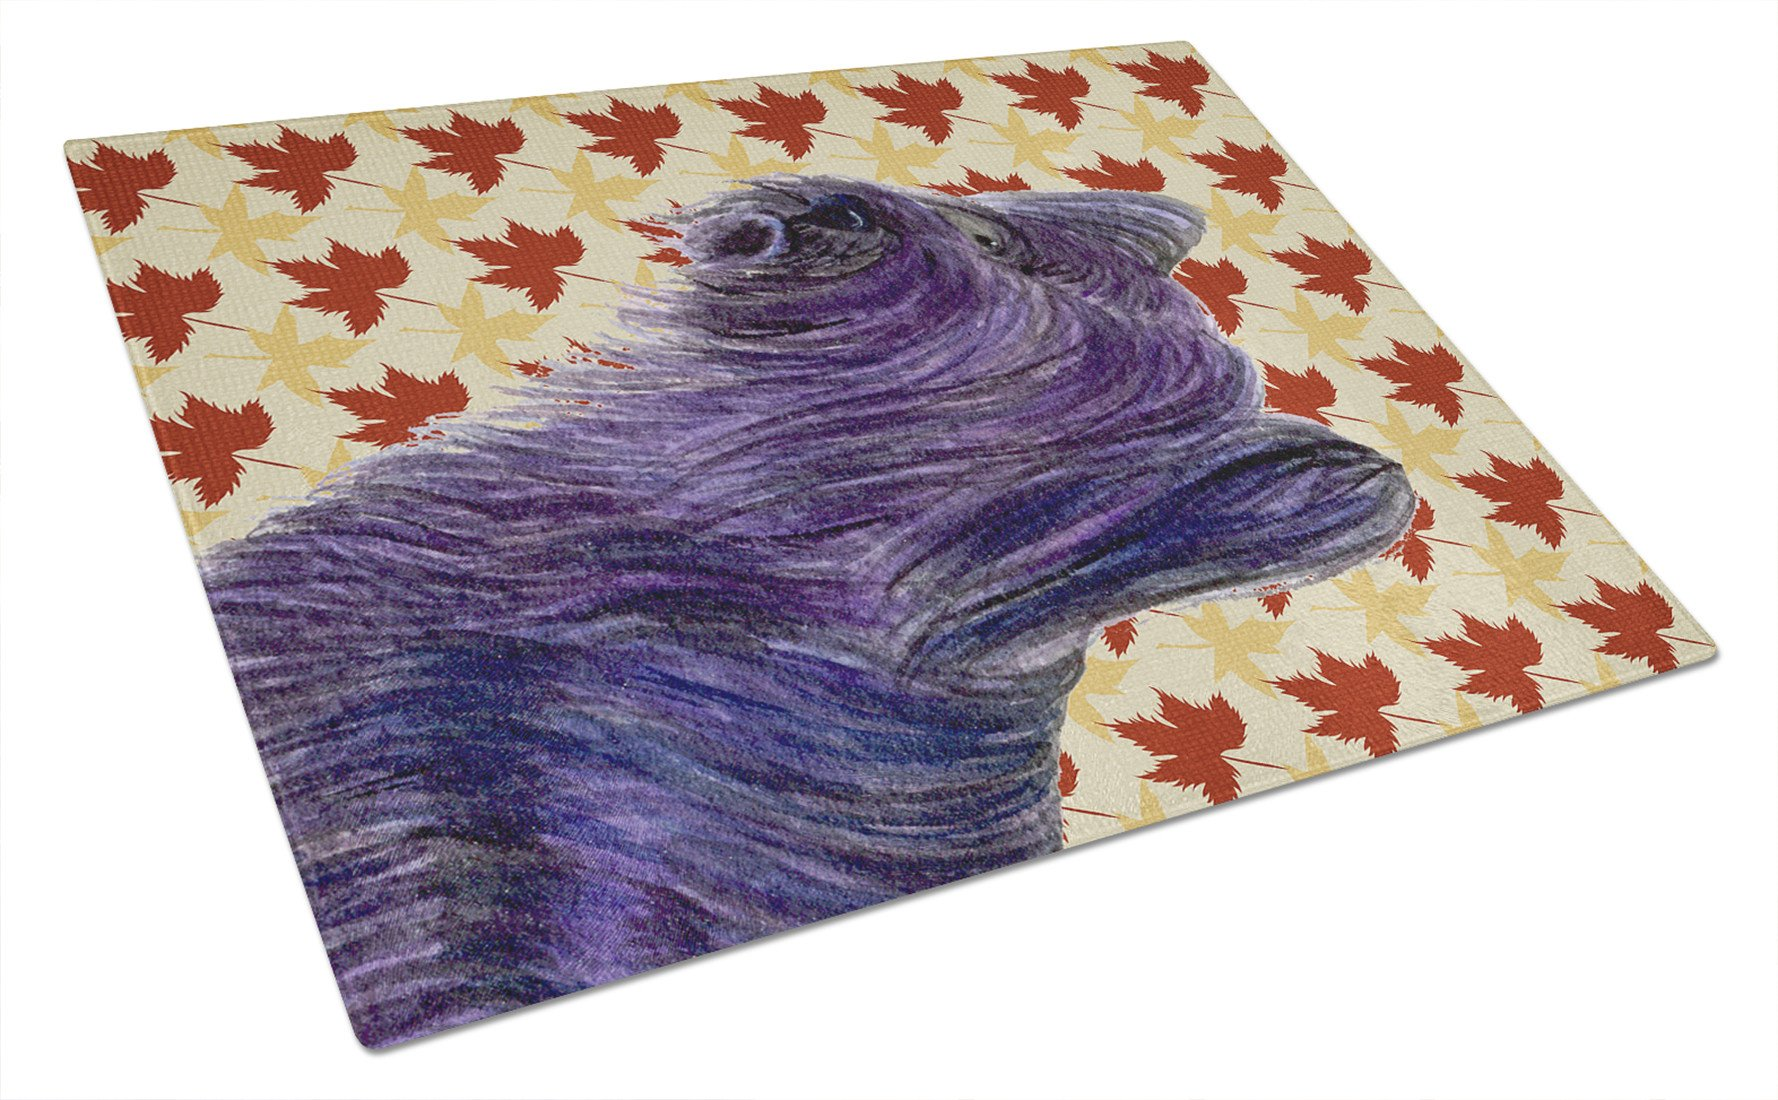 Skye Terrier Fall Leaves Portrait Glass Cutting Board Large by Caroline's Treasures